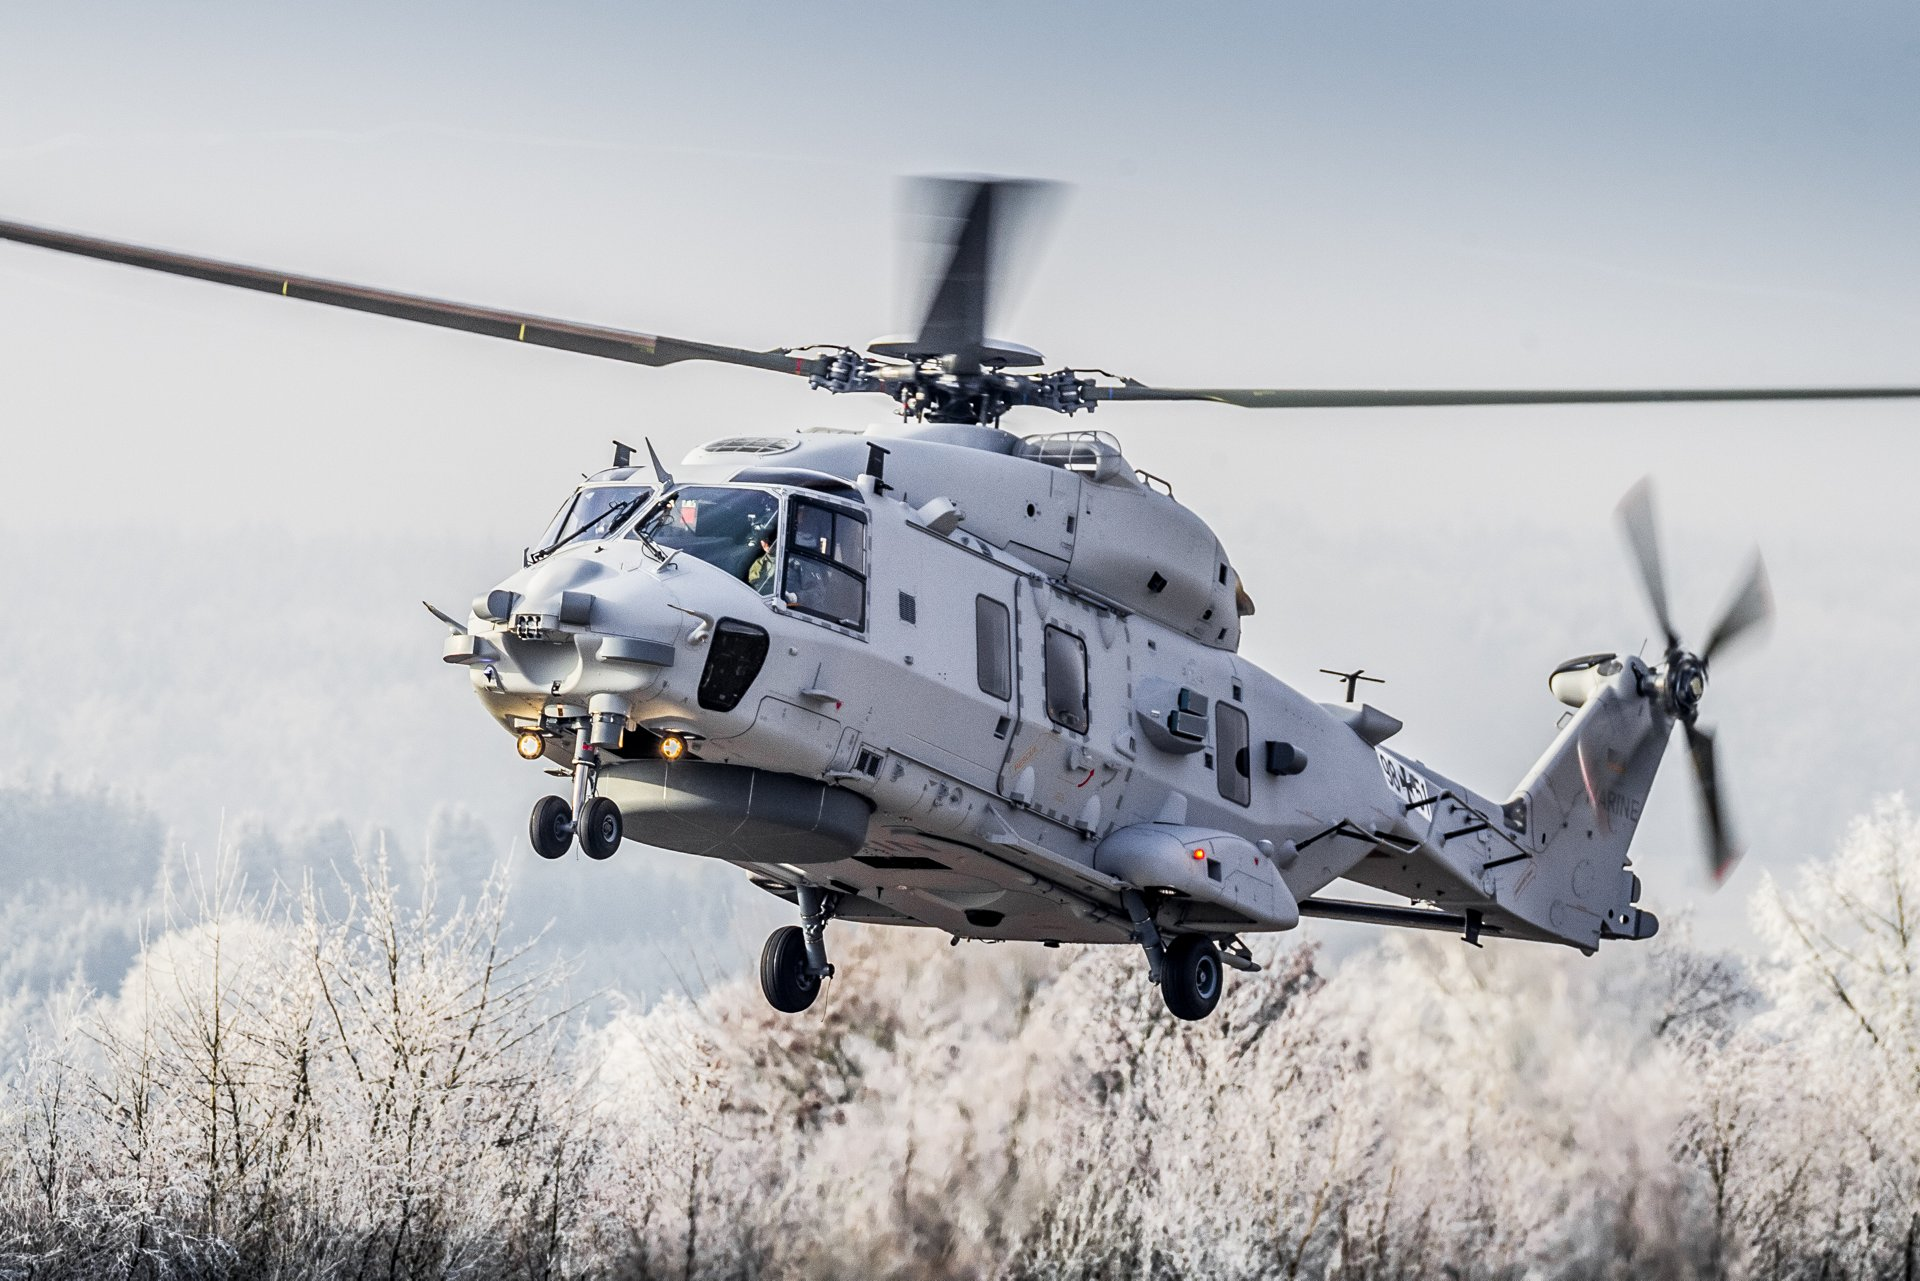 NHIndustries NH90 multi-role military helicopter